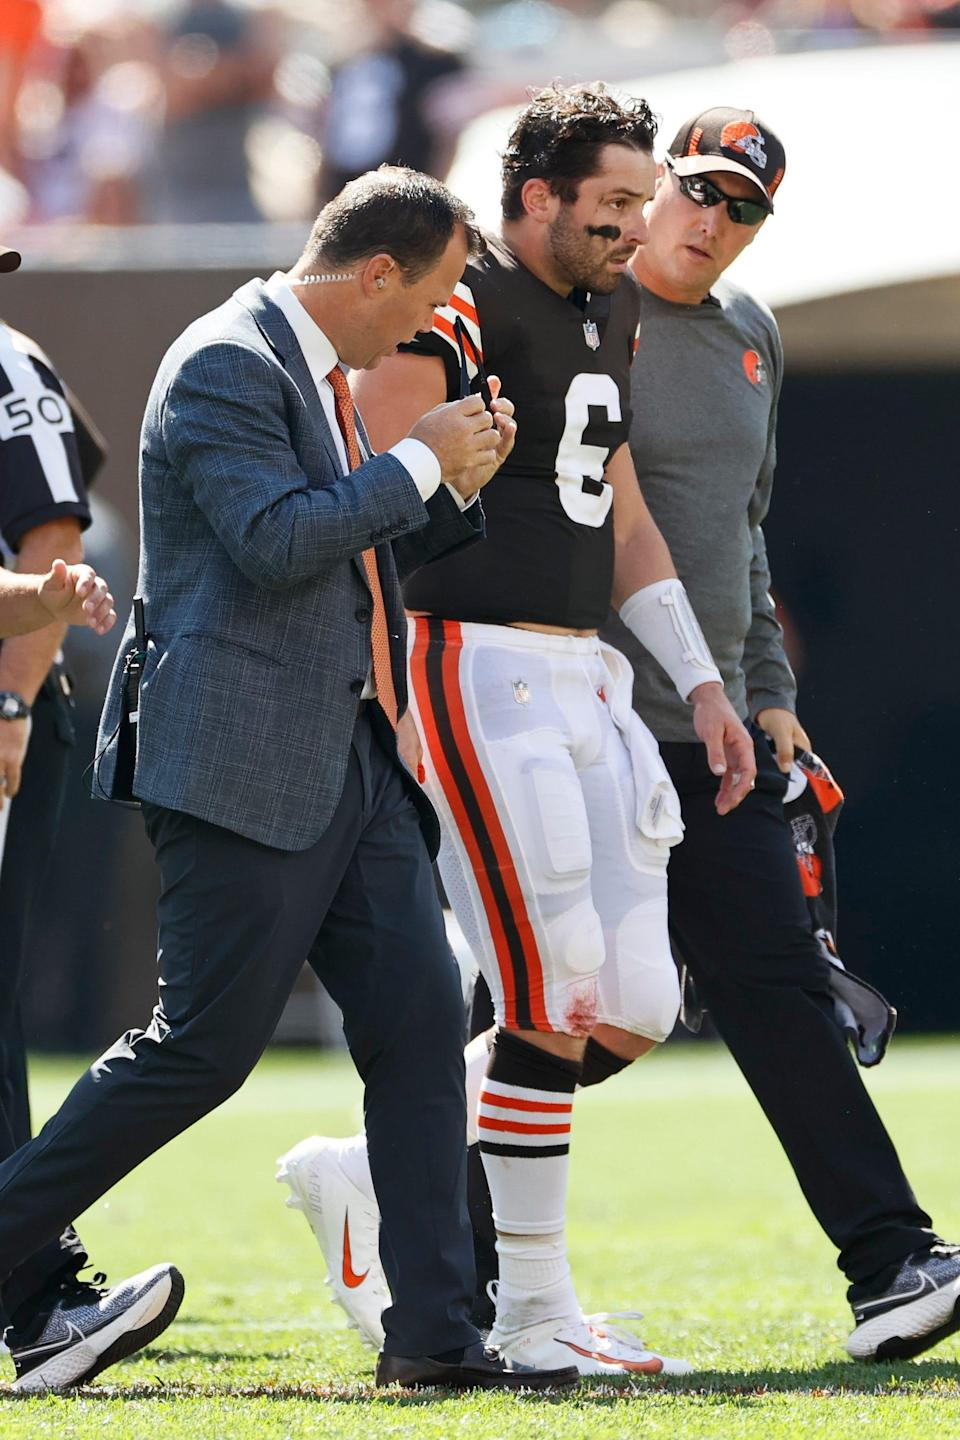 Cleveland Browns quarterback Baker Mayfield (6) is walked off the field after an injury during the first half of an NFL football game against the Houston Texans, Sunday, Sept. 19, 2021, in Cleveland. (AP Photo/Ron Schwane)